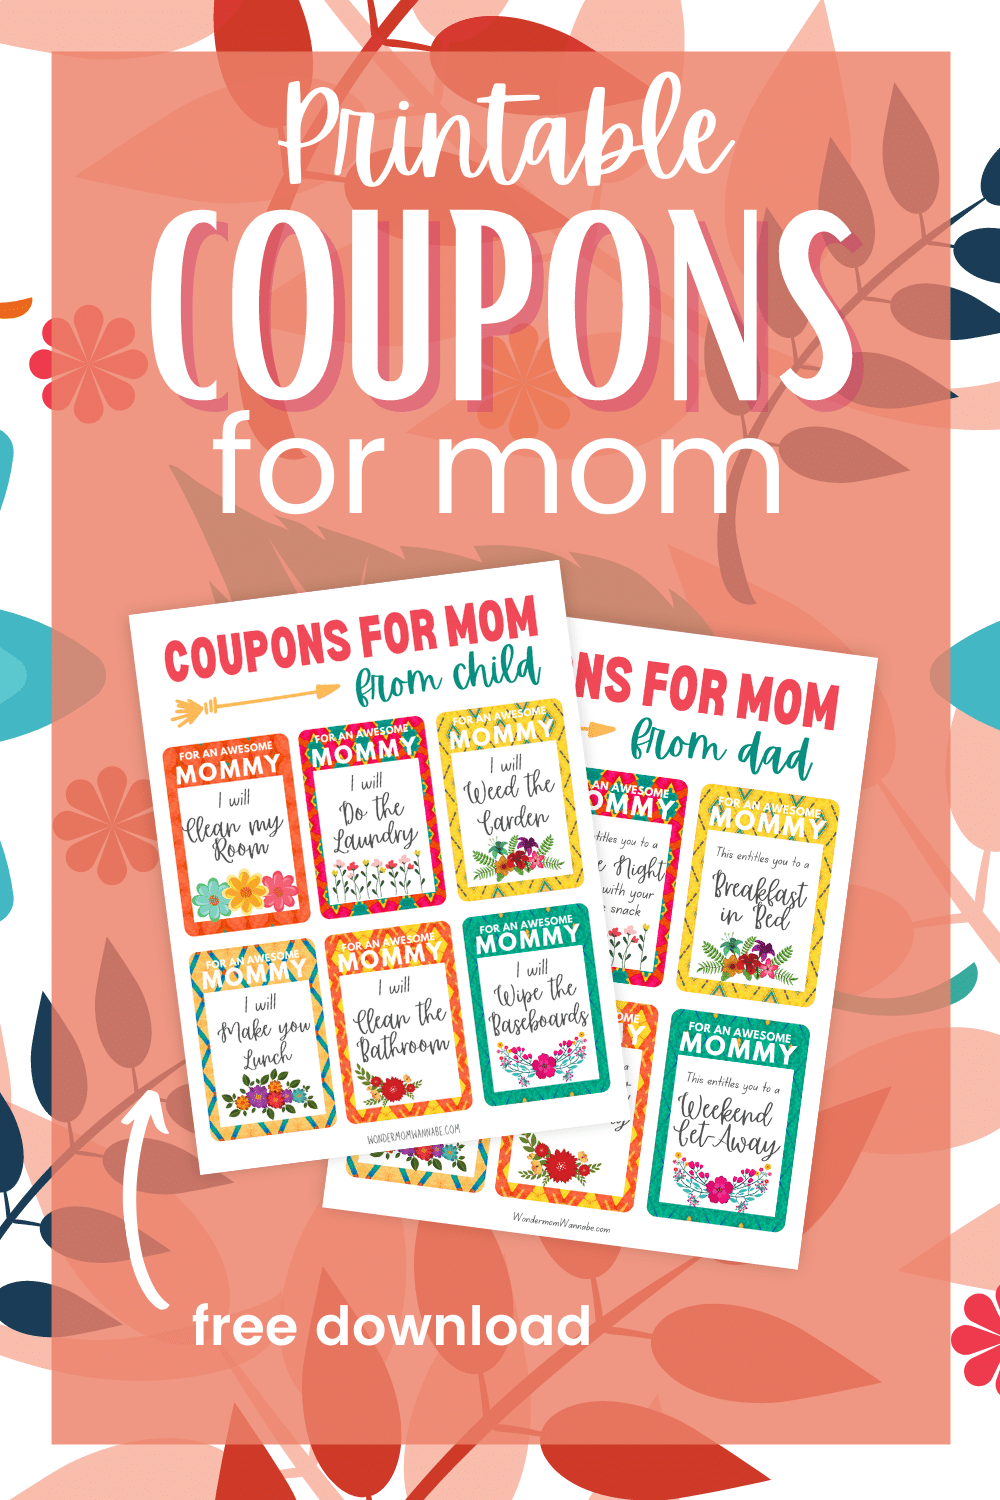 These printable coupons for mom make a great last-minute gift for Mother's Day or mom's birthday. Includes blank and pre-filled coupons! #mothersday #giftsformom #freeprintable #couponsformom via @wondermomwannab